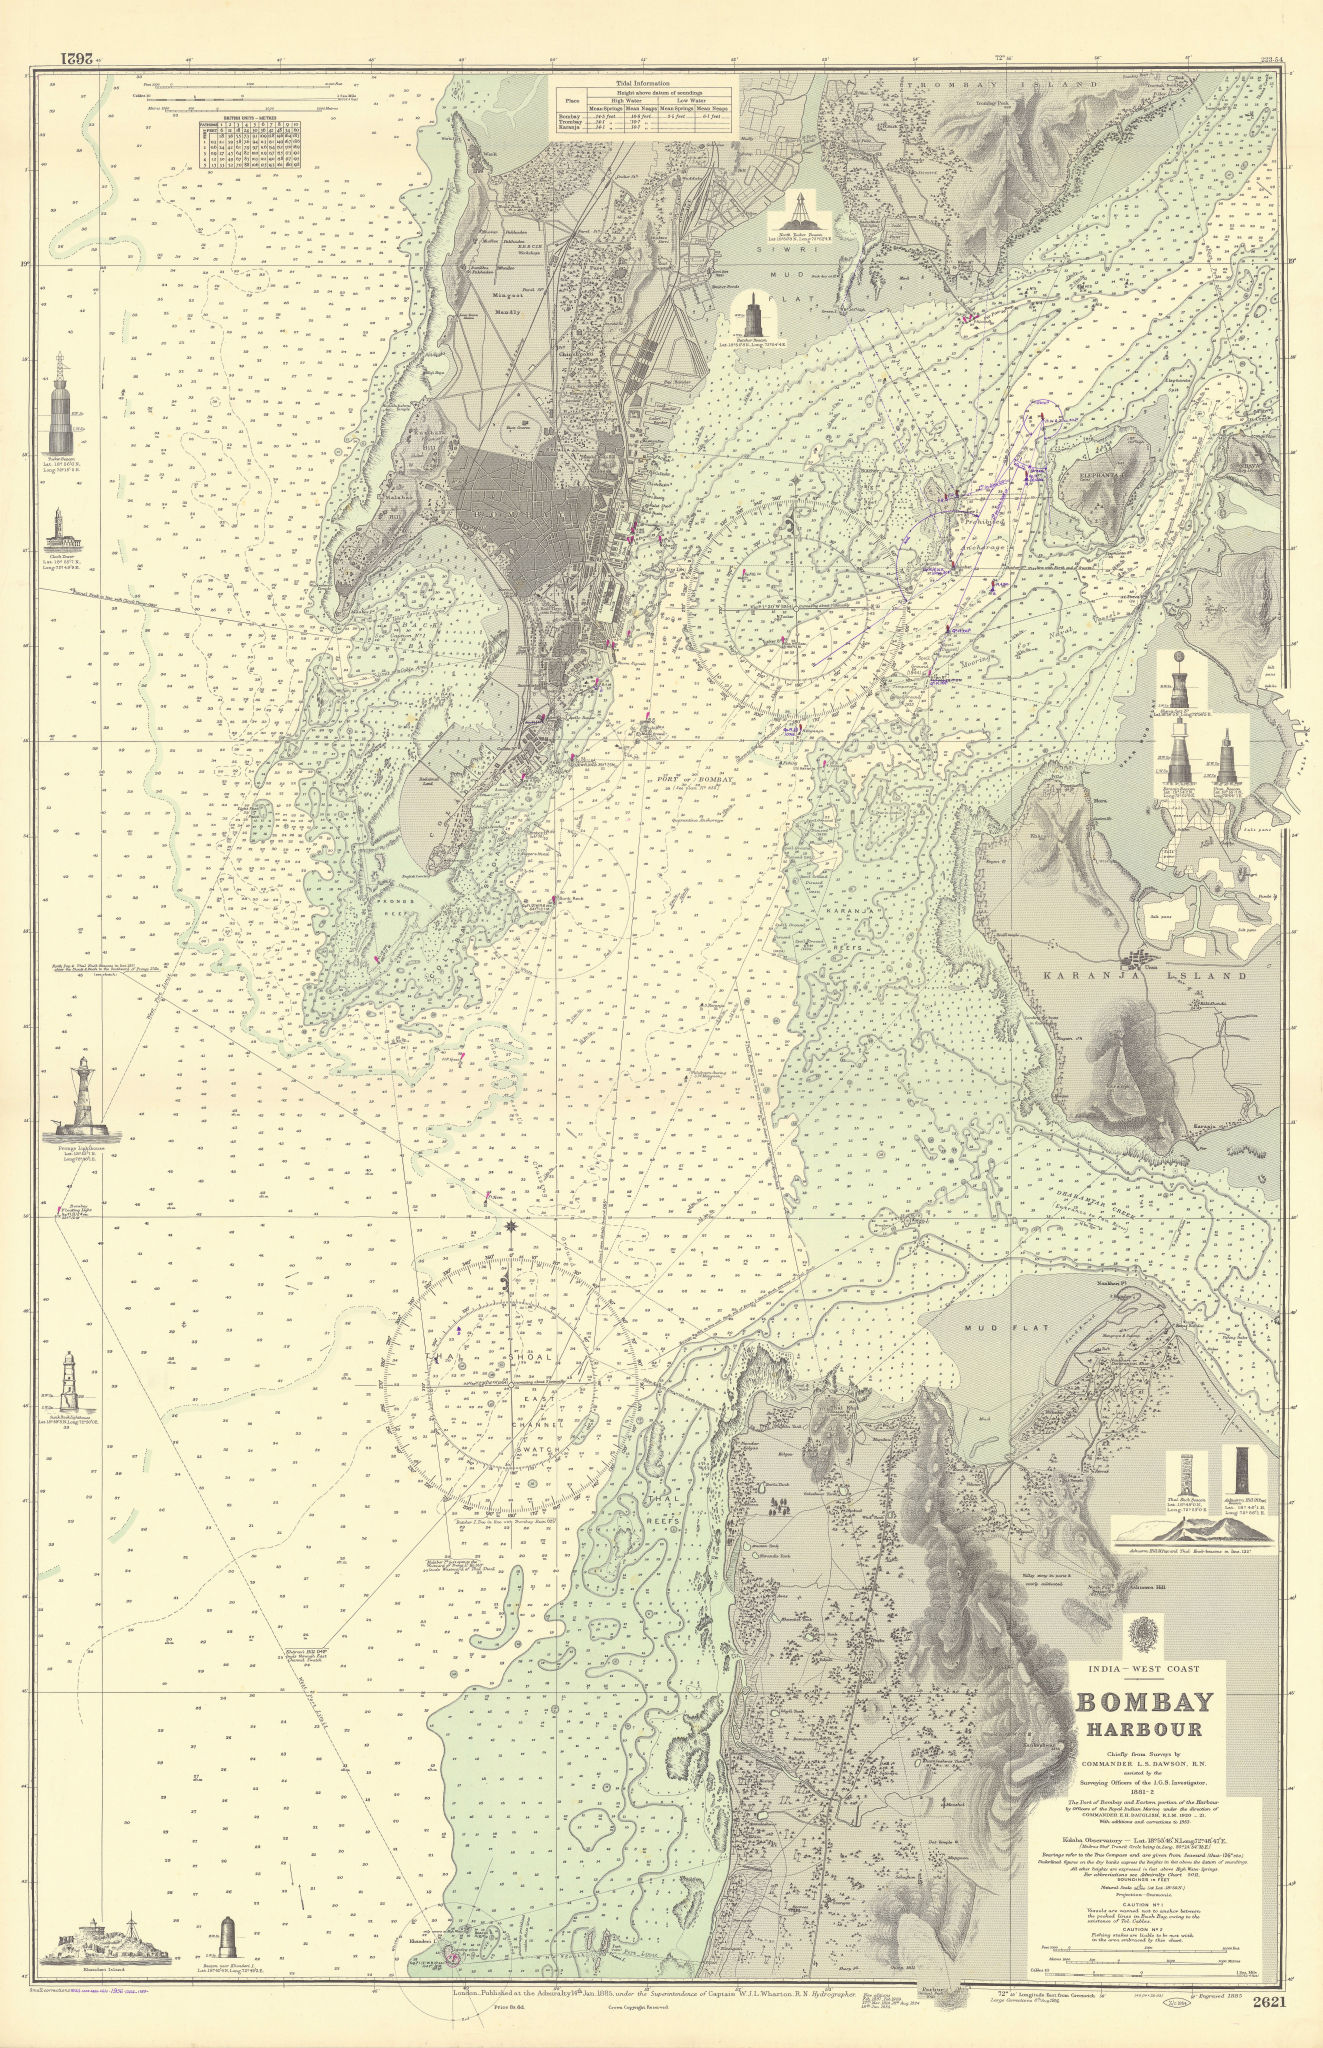 Bombay Harbour. Mumbai, India. ADMIRALTY sea chart 1885 (1956) old vintage map